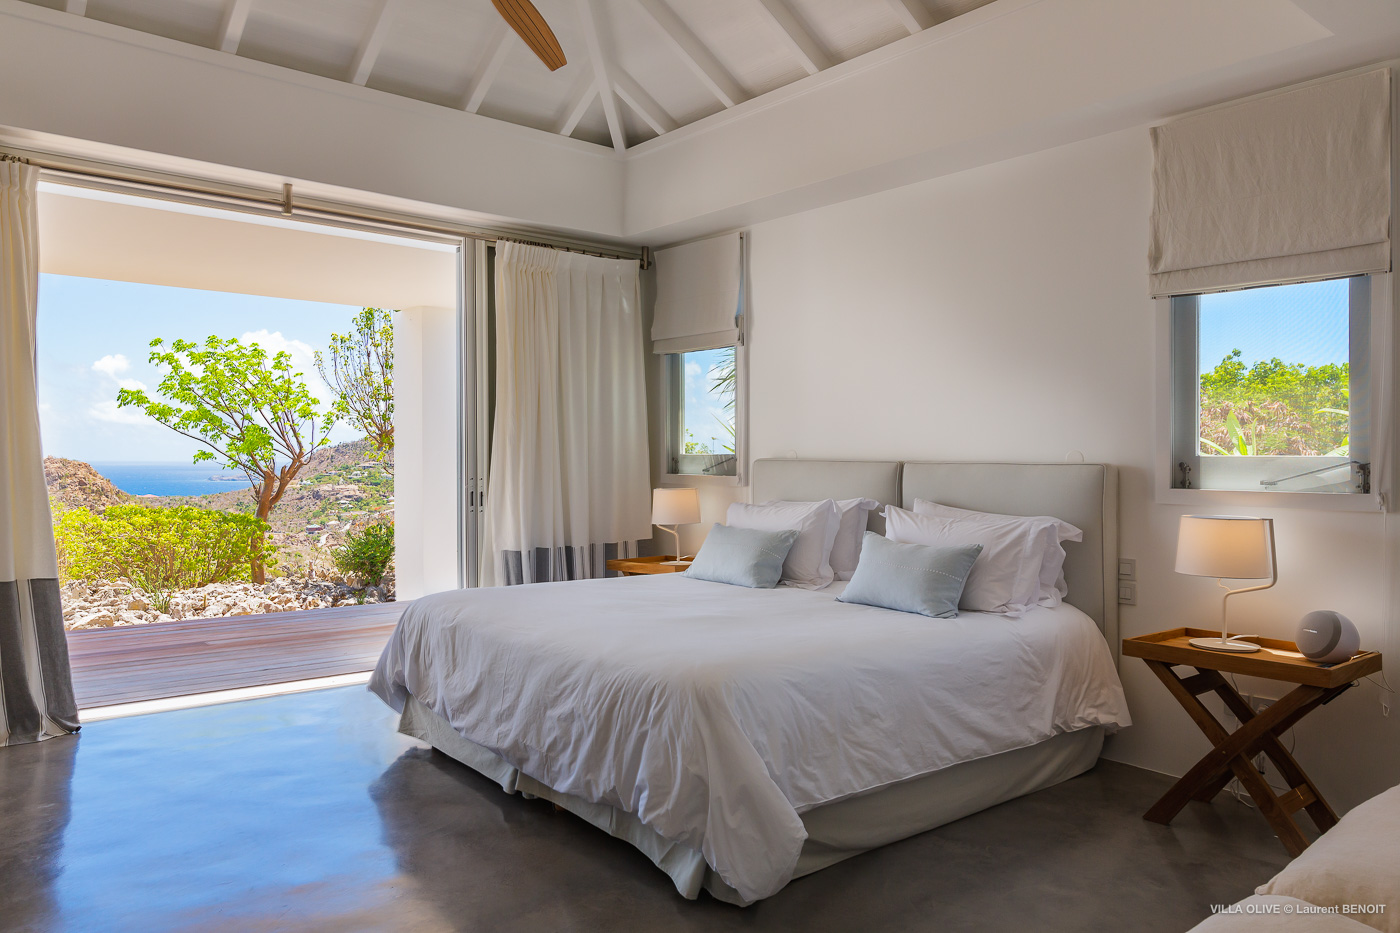 Villa Olive - Breezy Villa for Rent with Full Air Conditioning St Barth - Bedroom